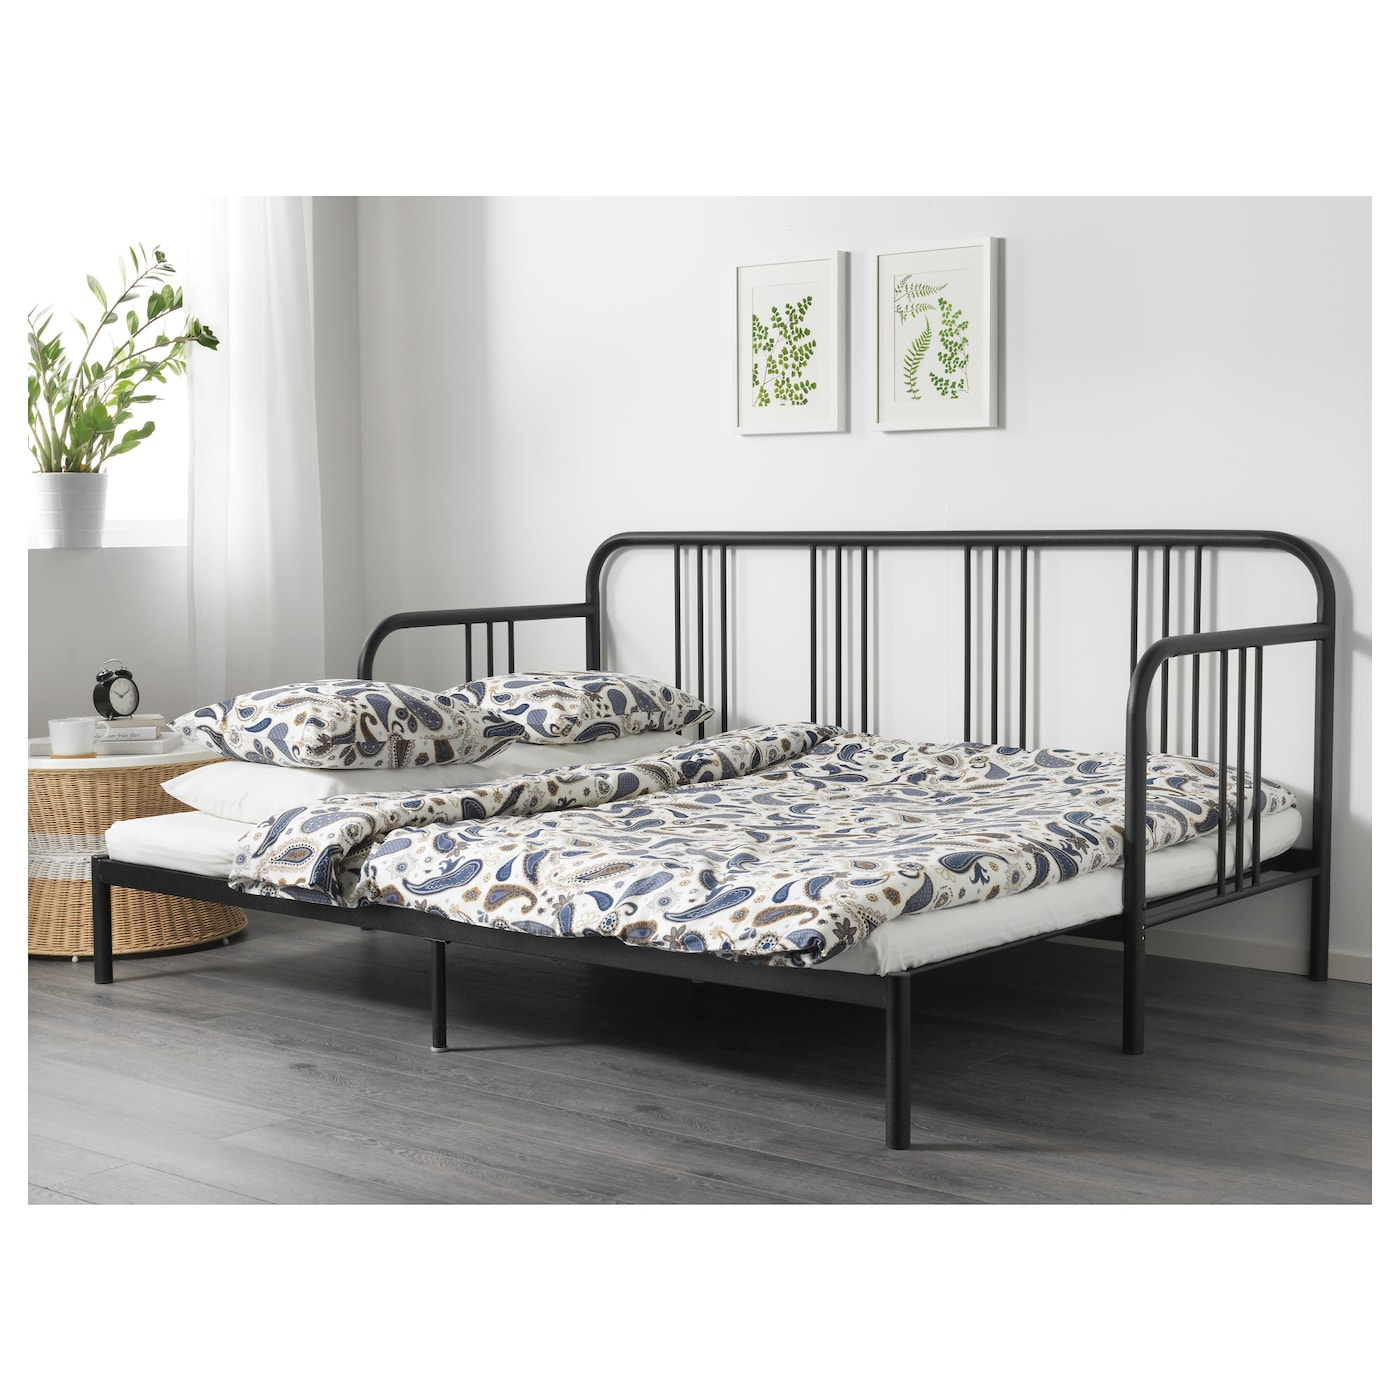 fyresdal divan avec 2 matelas noir moshult ferme 80x200 cm ikea. Black Bedroom Furniture Sets. Home Design Ideas